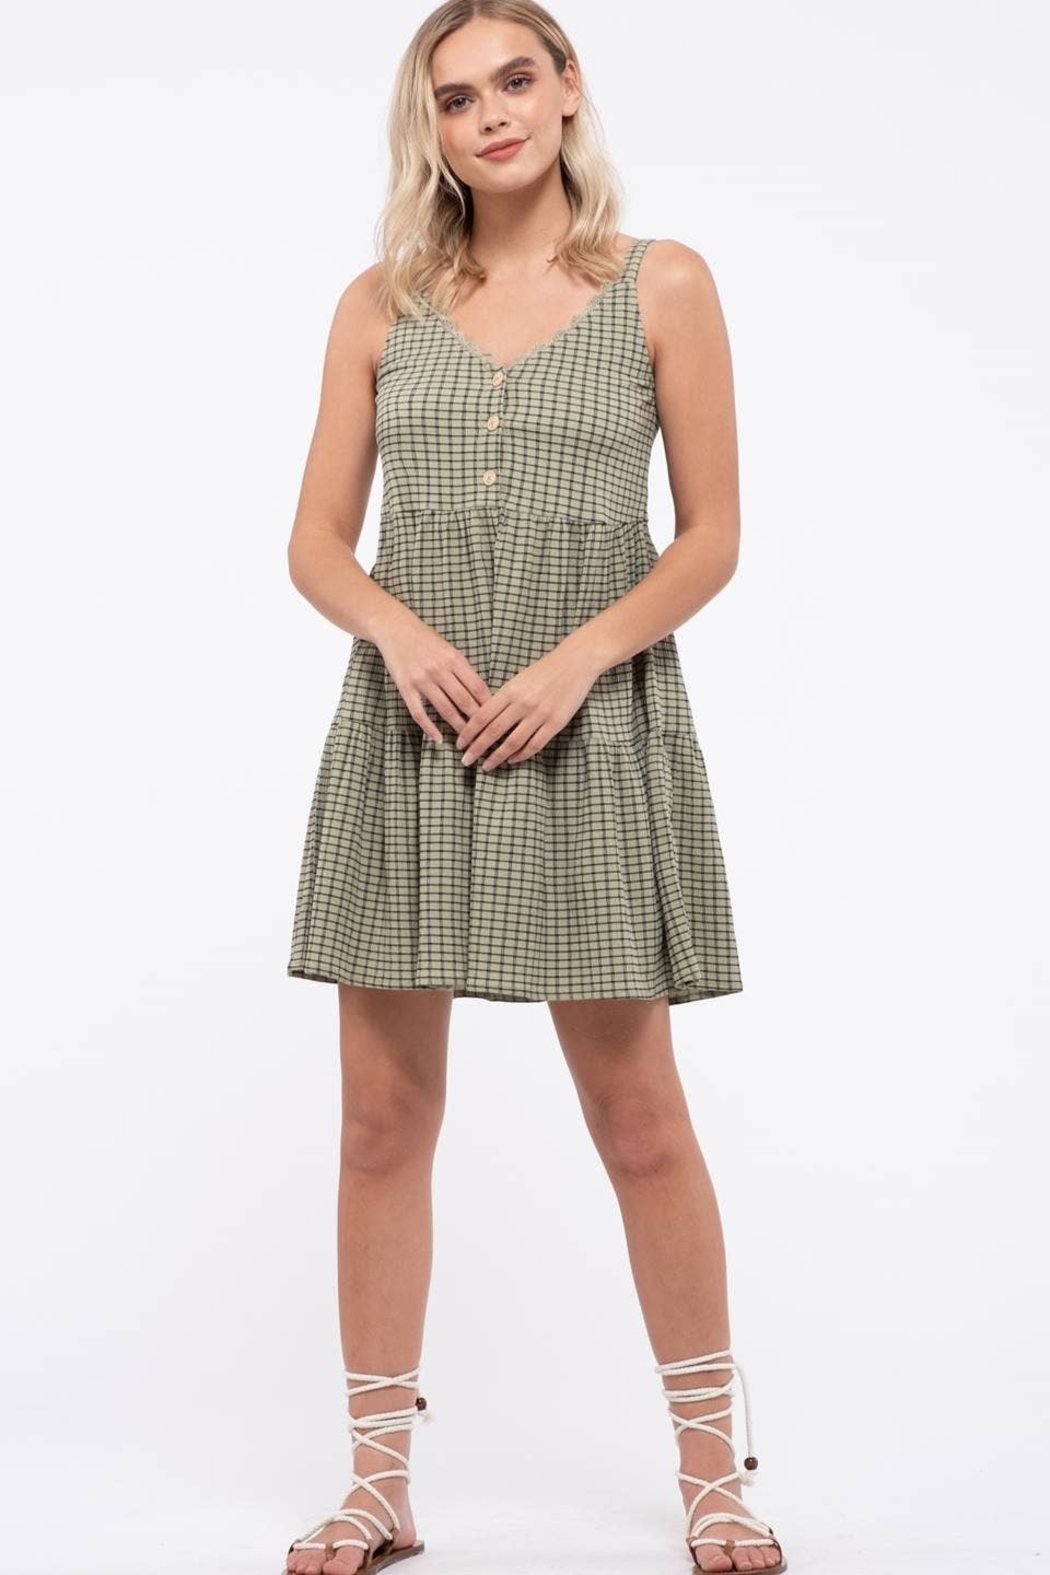 blu pepper  Grid Check Tiered Dress - Front Full Image